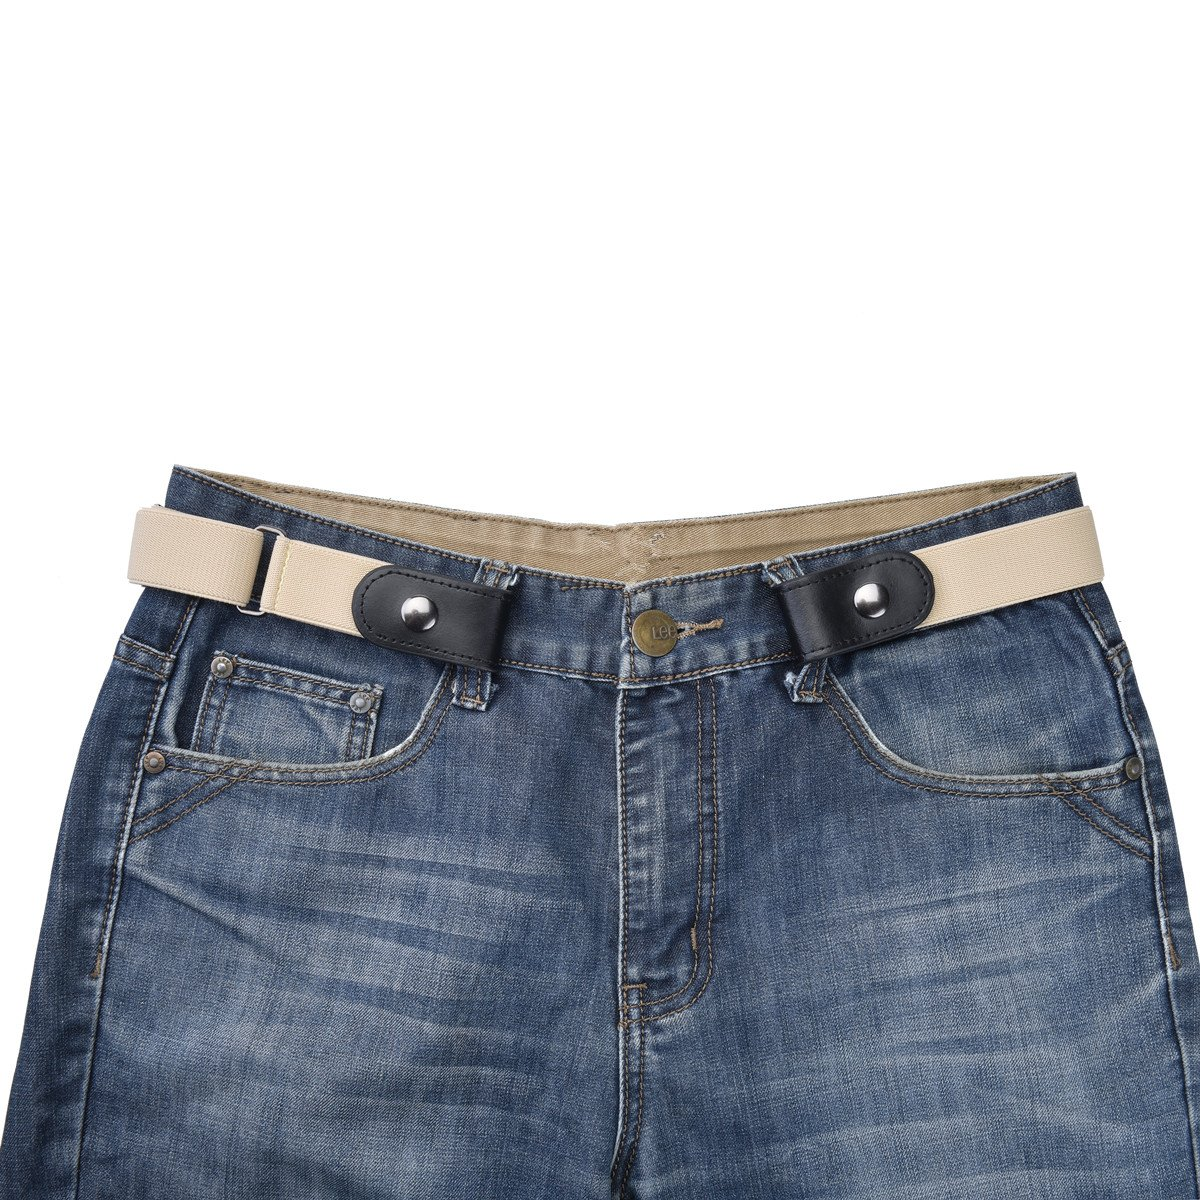 Buckle-less No Bulge Belt for Women, No Buckle and Hassle Women Invisible Belts Radmire